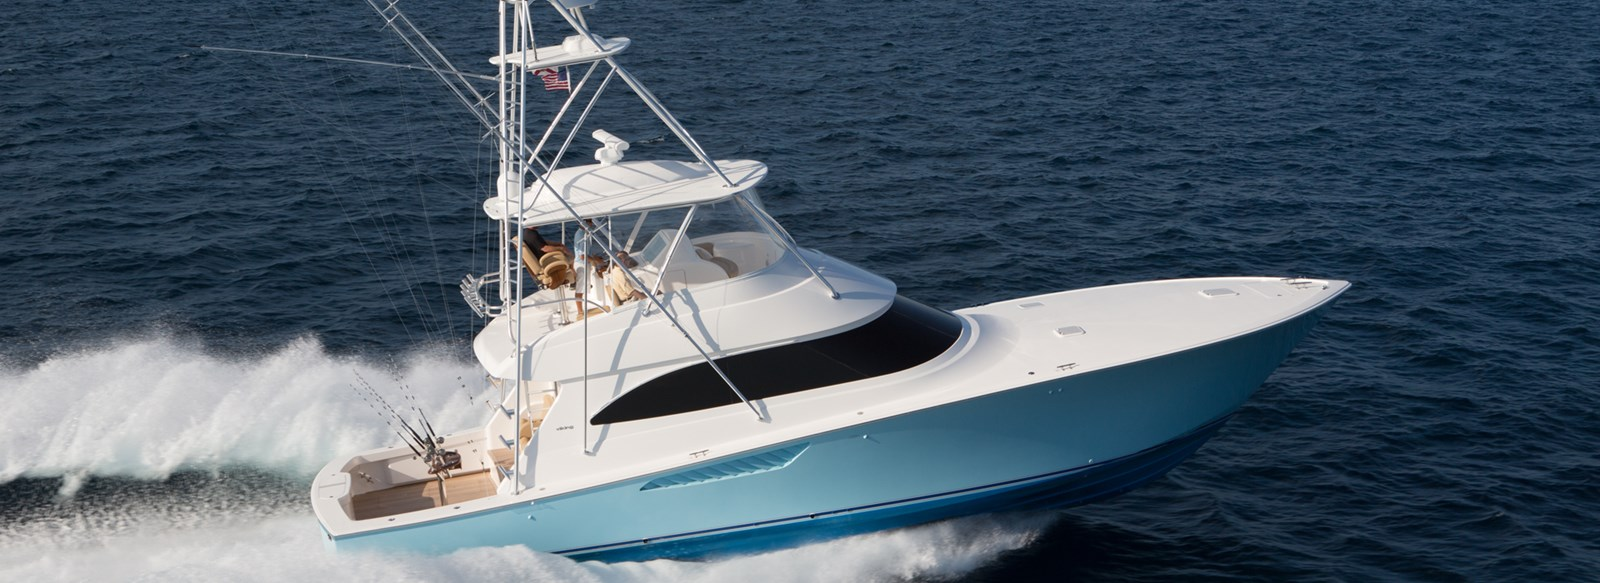 New Viking 55 Convertible Yachts For Sale